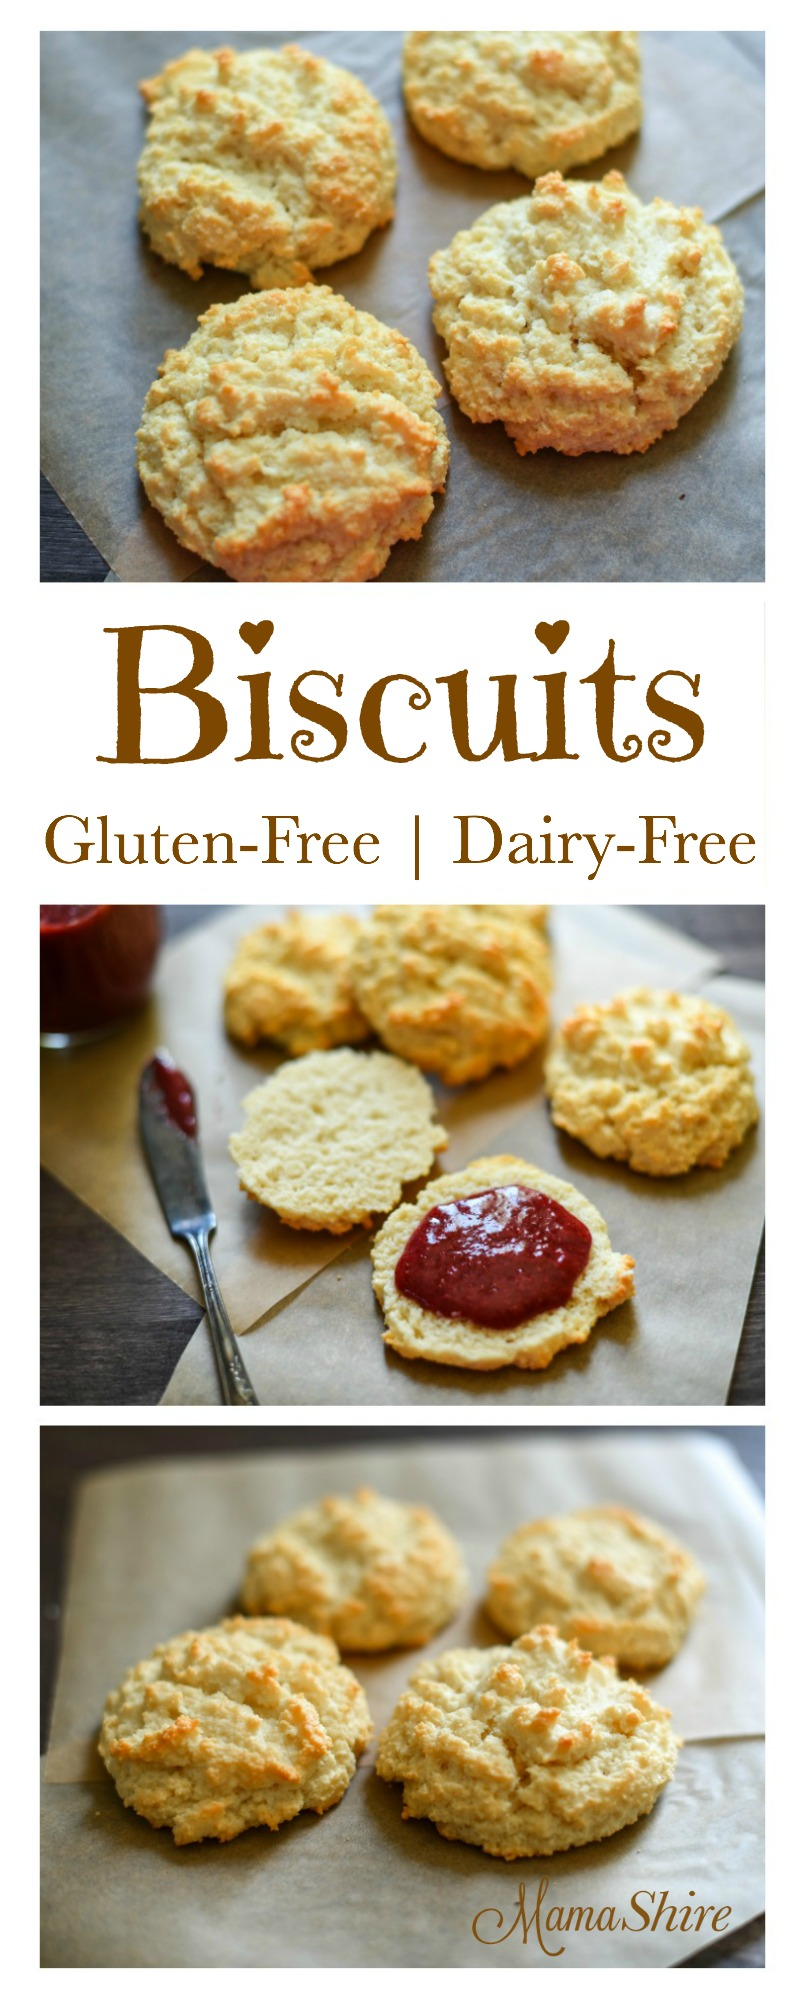 Easy Homemade Gluten-Free, Low-Carb Biscuits